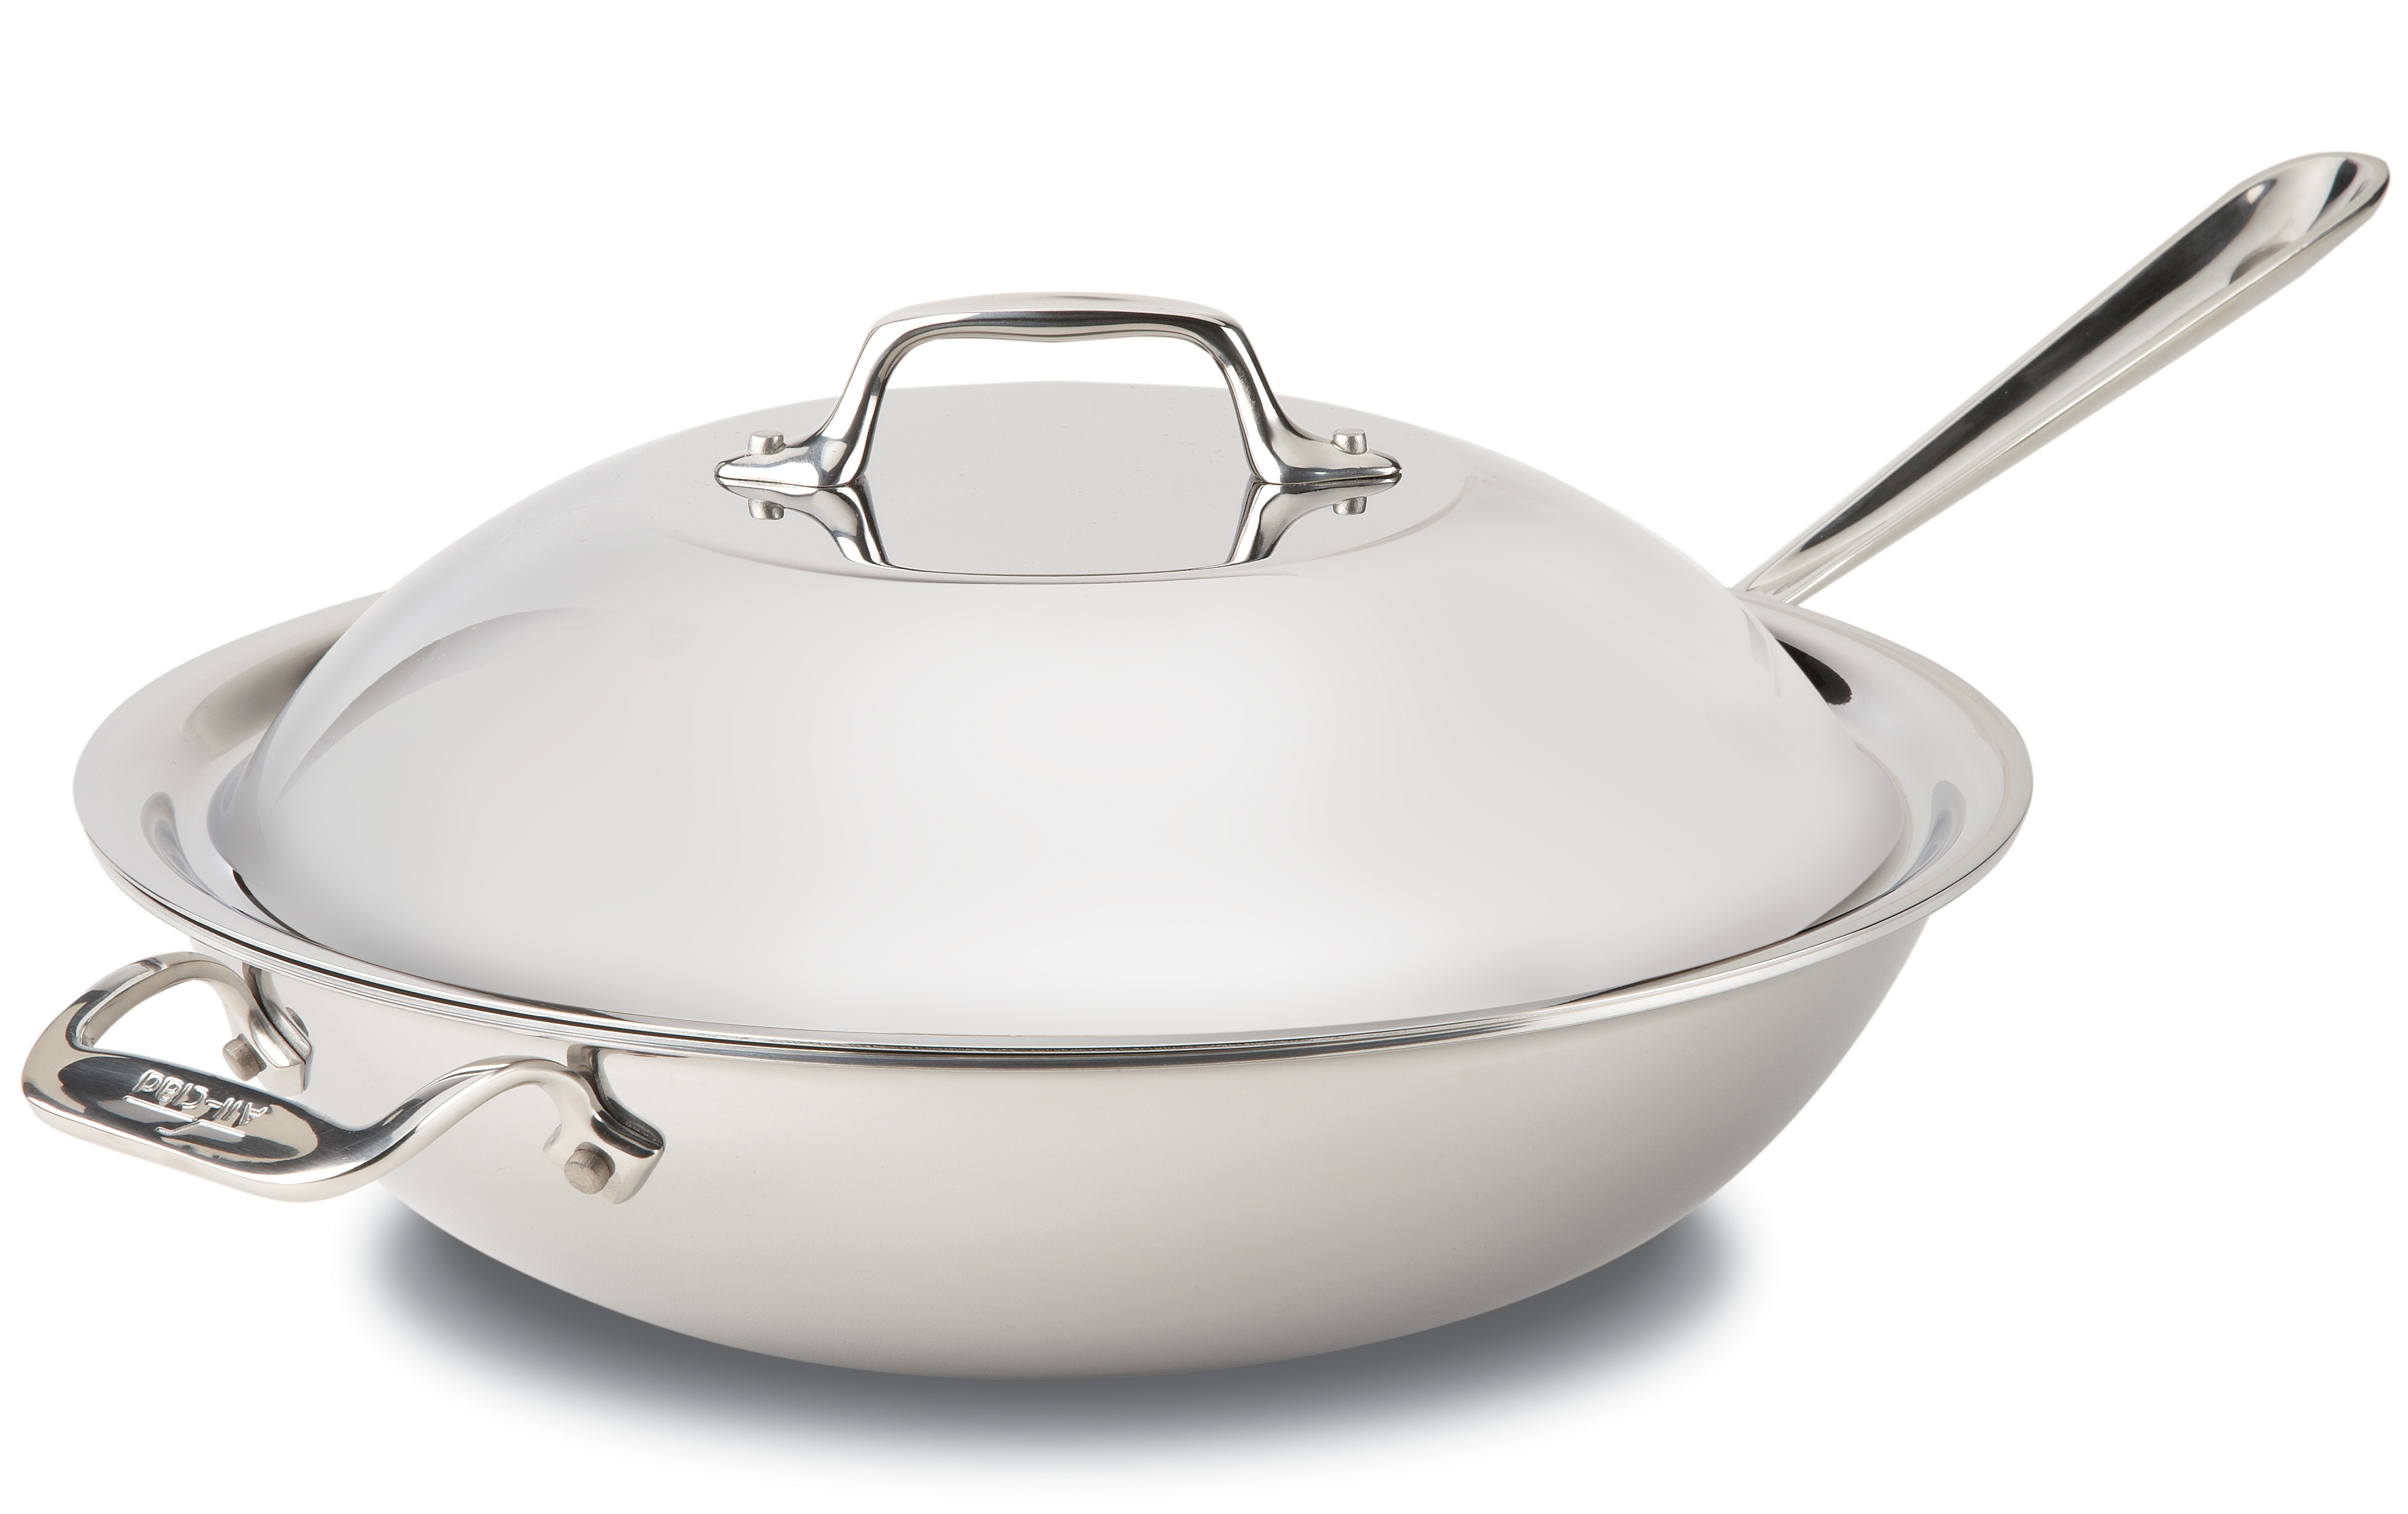 All-Clad Stainless Steel Chef's Pan With Domed Lid, 12 Inch